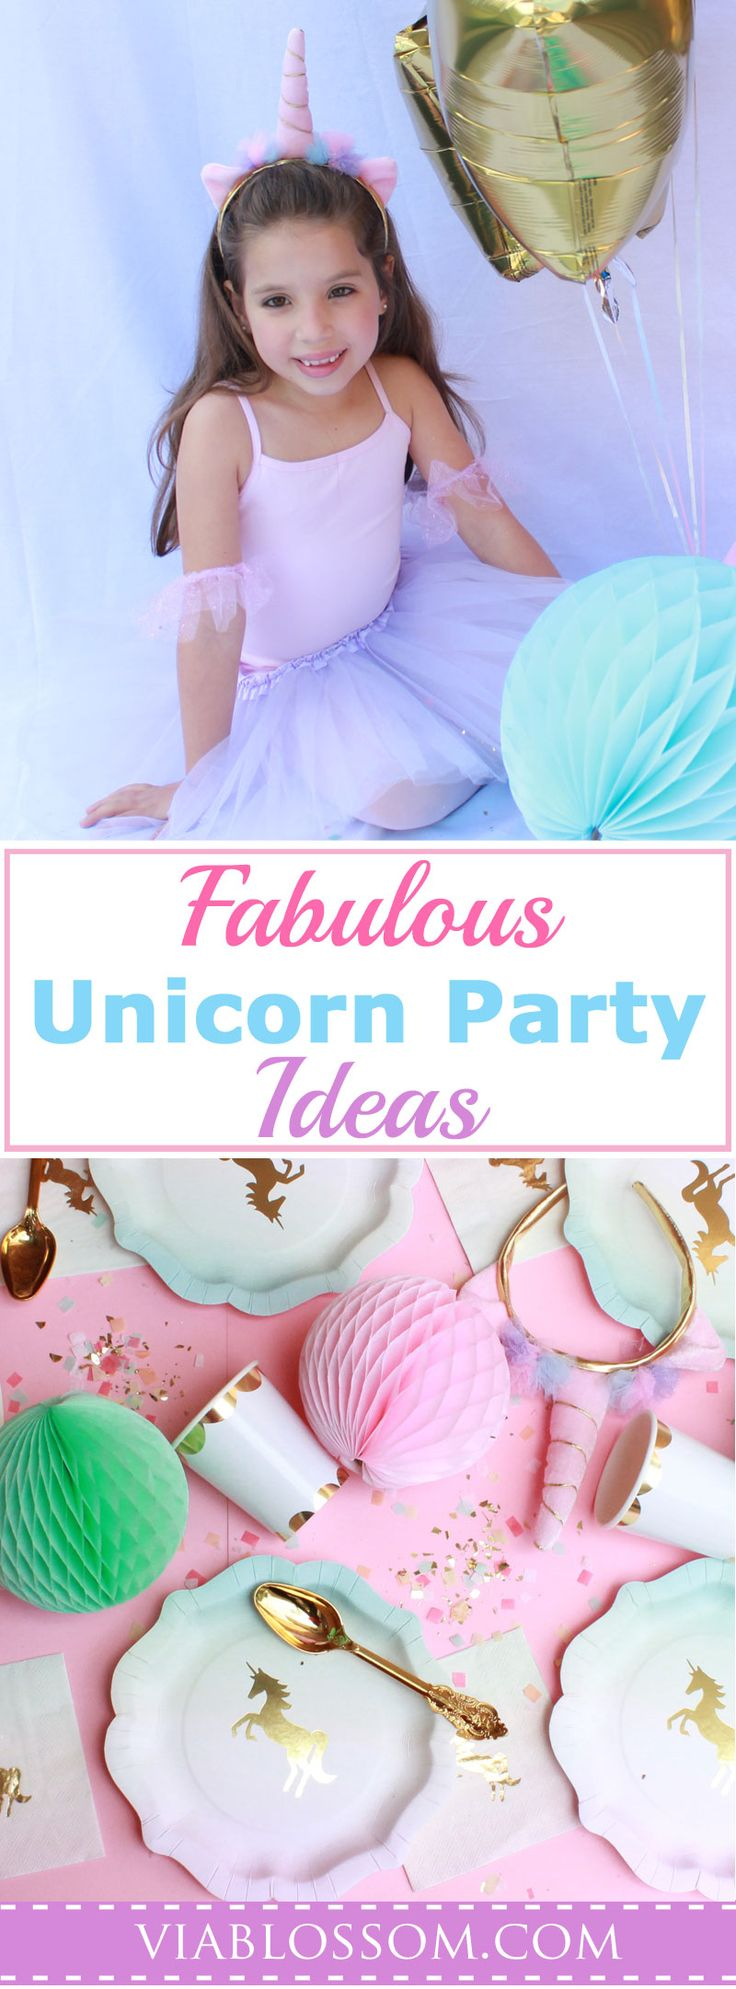 Our Top Unicorn Party Ideas and Decorations will help you plan your Unicorn party with ease!  If you are planning a Unicorn Birthday Party for your girl look no further!